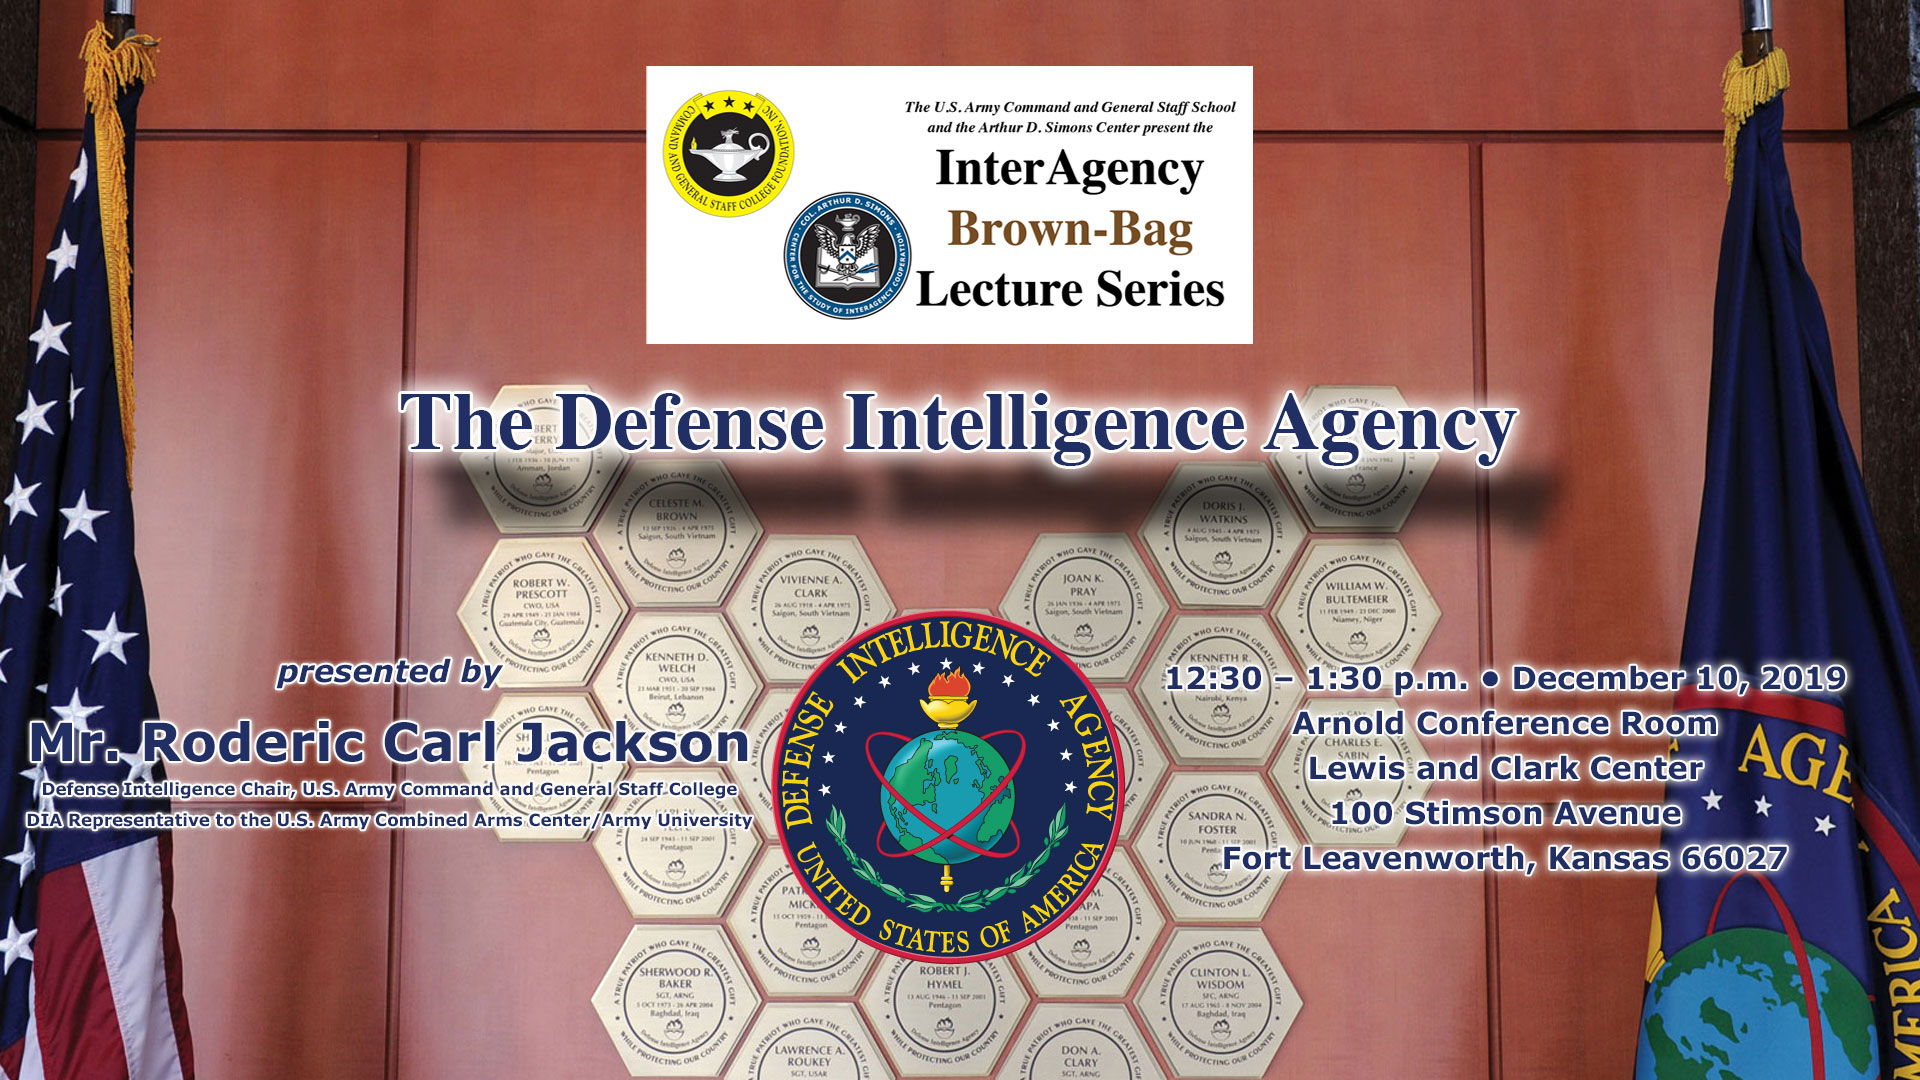 InterAgency Brownbag Lecture info image with speaker/dates/location